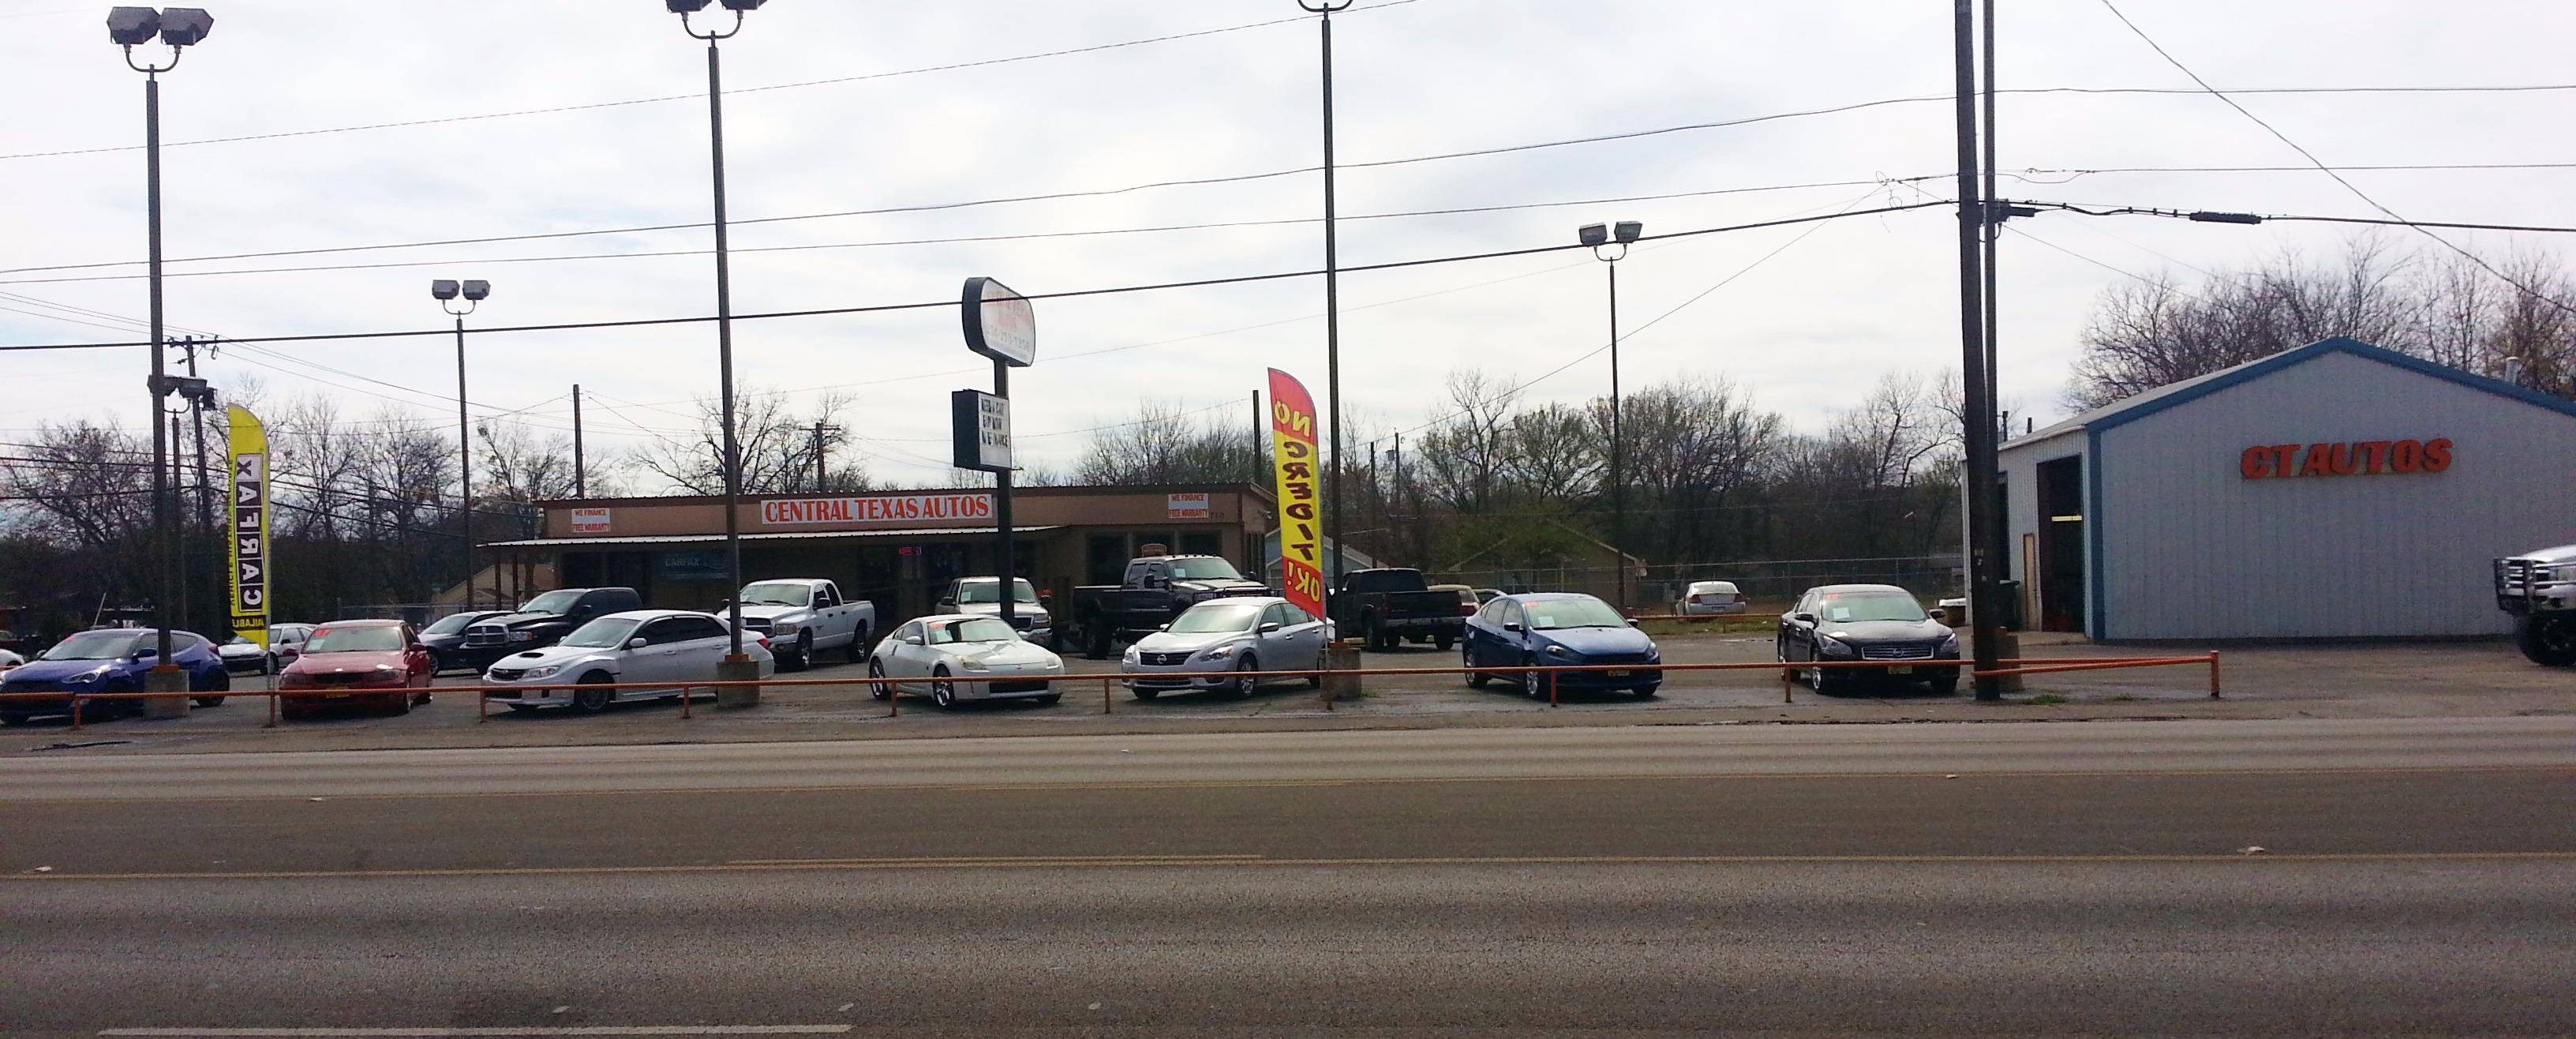 Central Texas Autos In Killeen Tx Whitepages